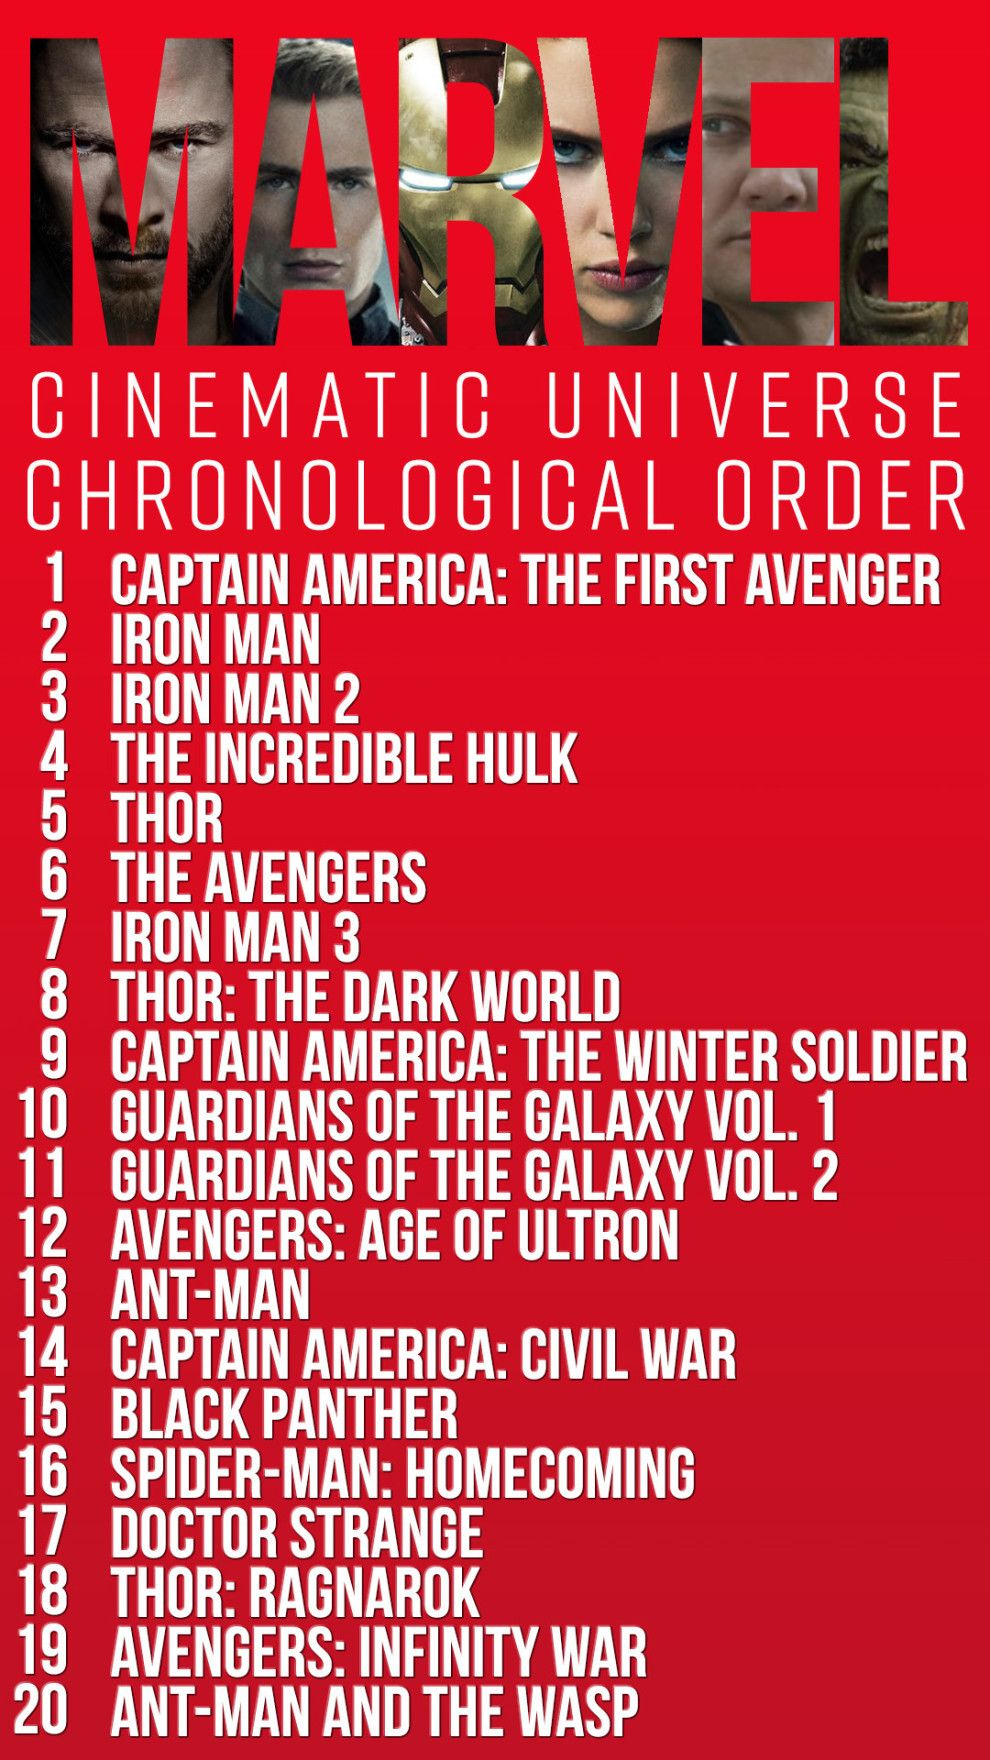 How To Watch Every Marvel Cinematic Universe Movie In Chronological Order #marvelmoviesinorder